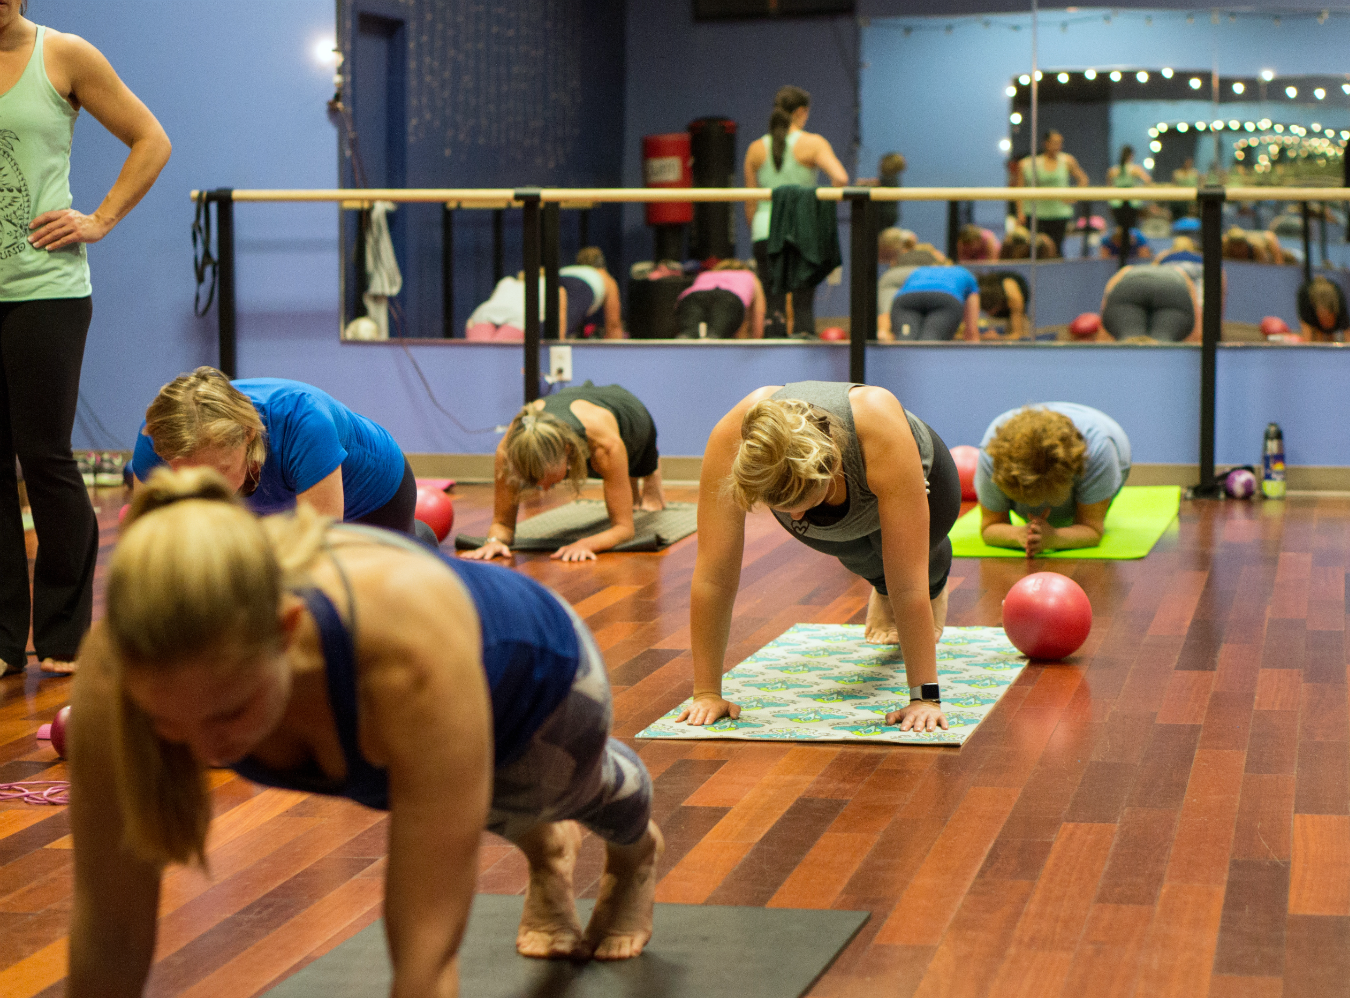 Full Access / $89 - UNLIMITED CLASSES!Full use of all facility amenities—including infrared saunas, hydro massage, and cardio and strength training equipment.$89.00 per month.$19.99 initiation fee.No annual commitment required.